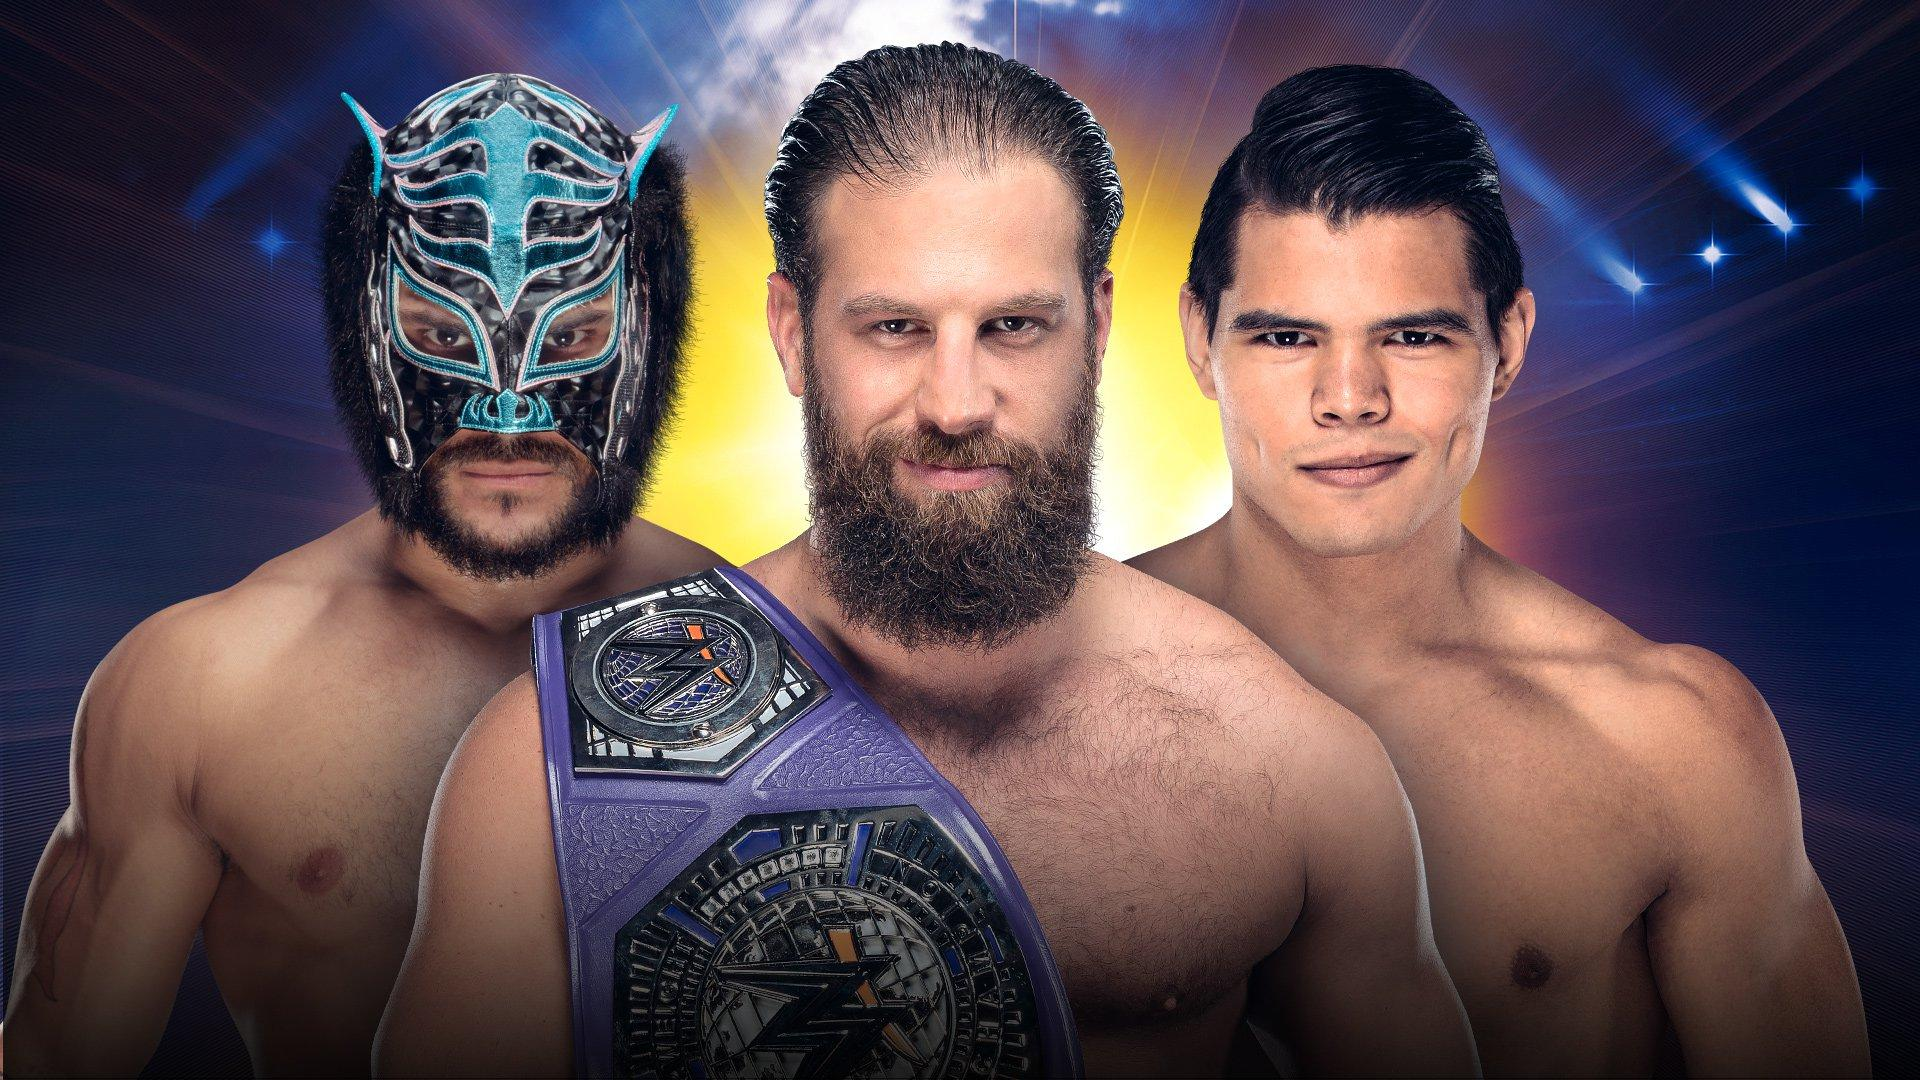 WWE Cruiserweight Champion Drew Gulak vs Humberto Carrillo vs Lince Dorado